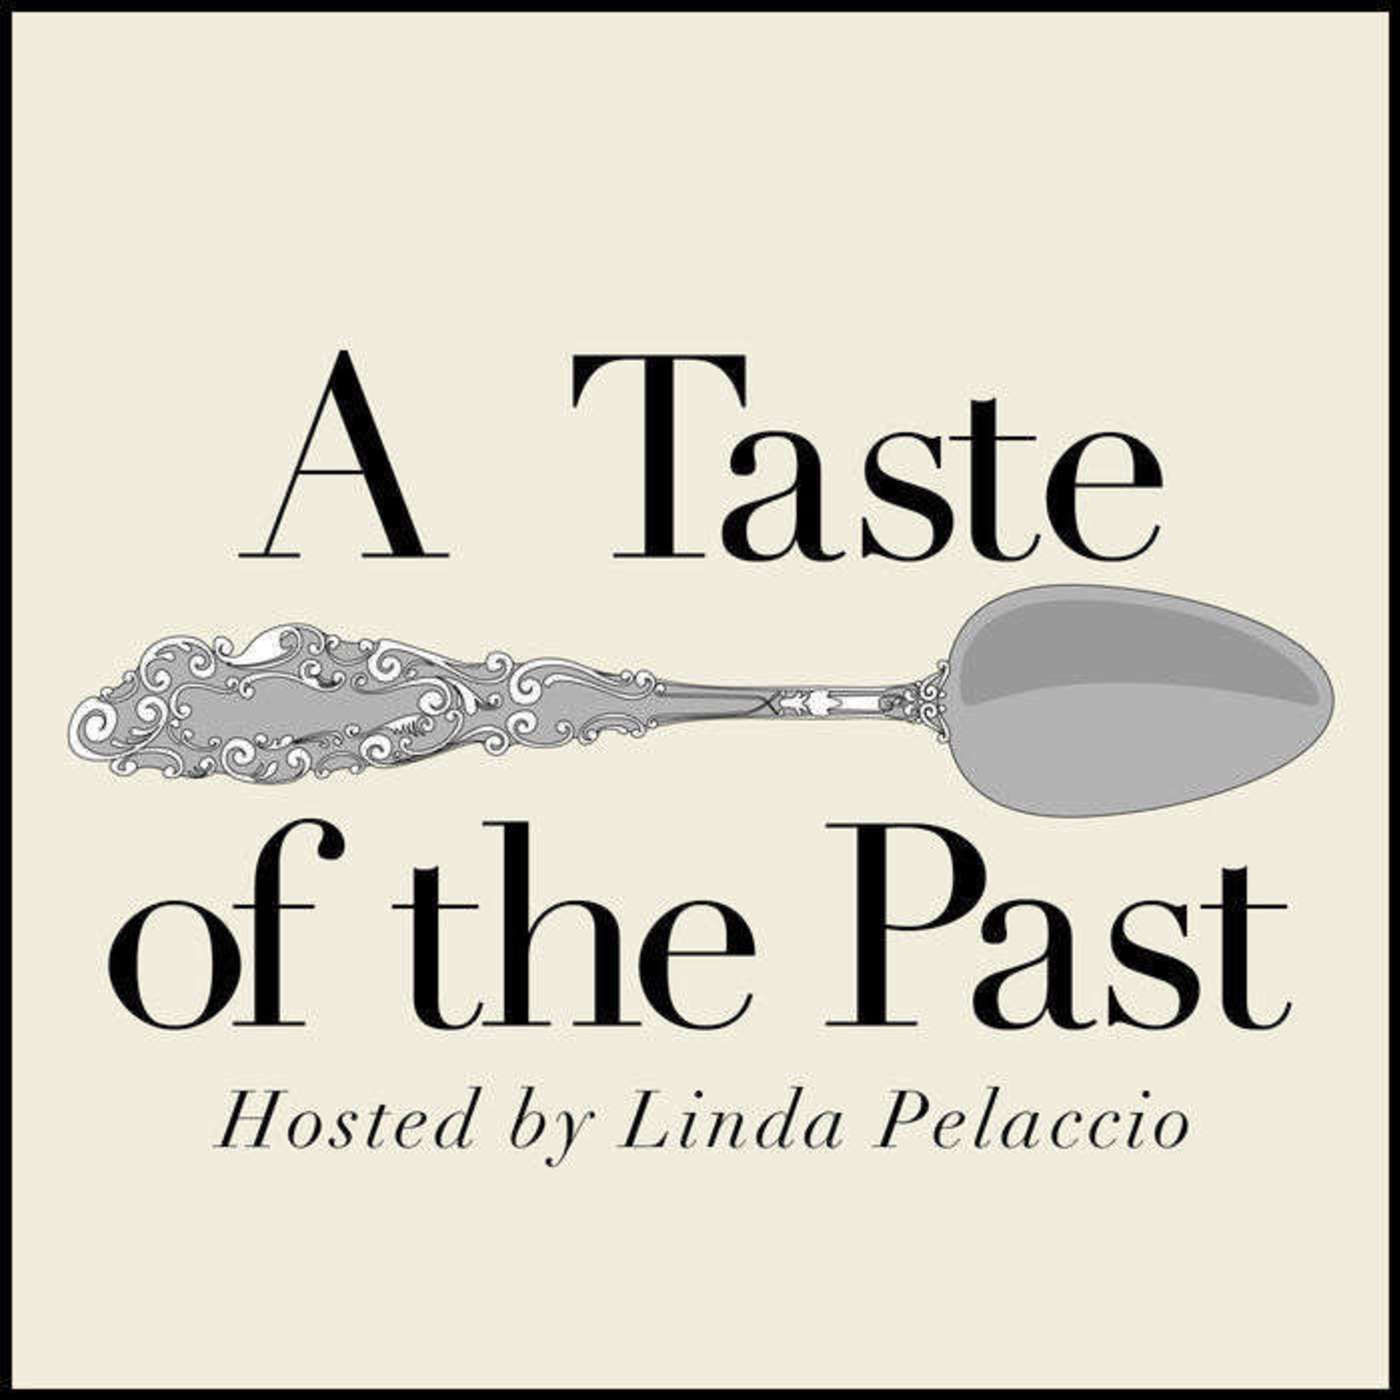 Episode 47: The Evolution of the Modern Kitchen: 100 Years of Design